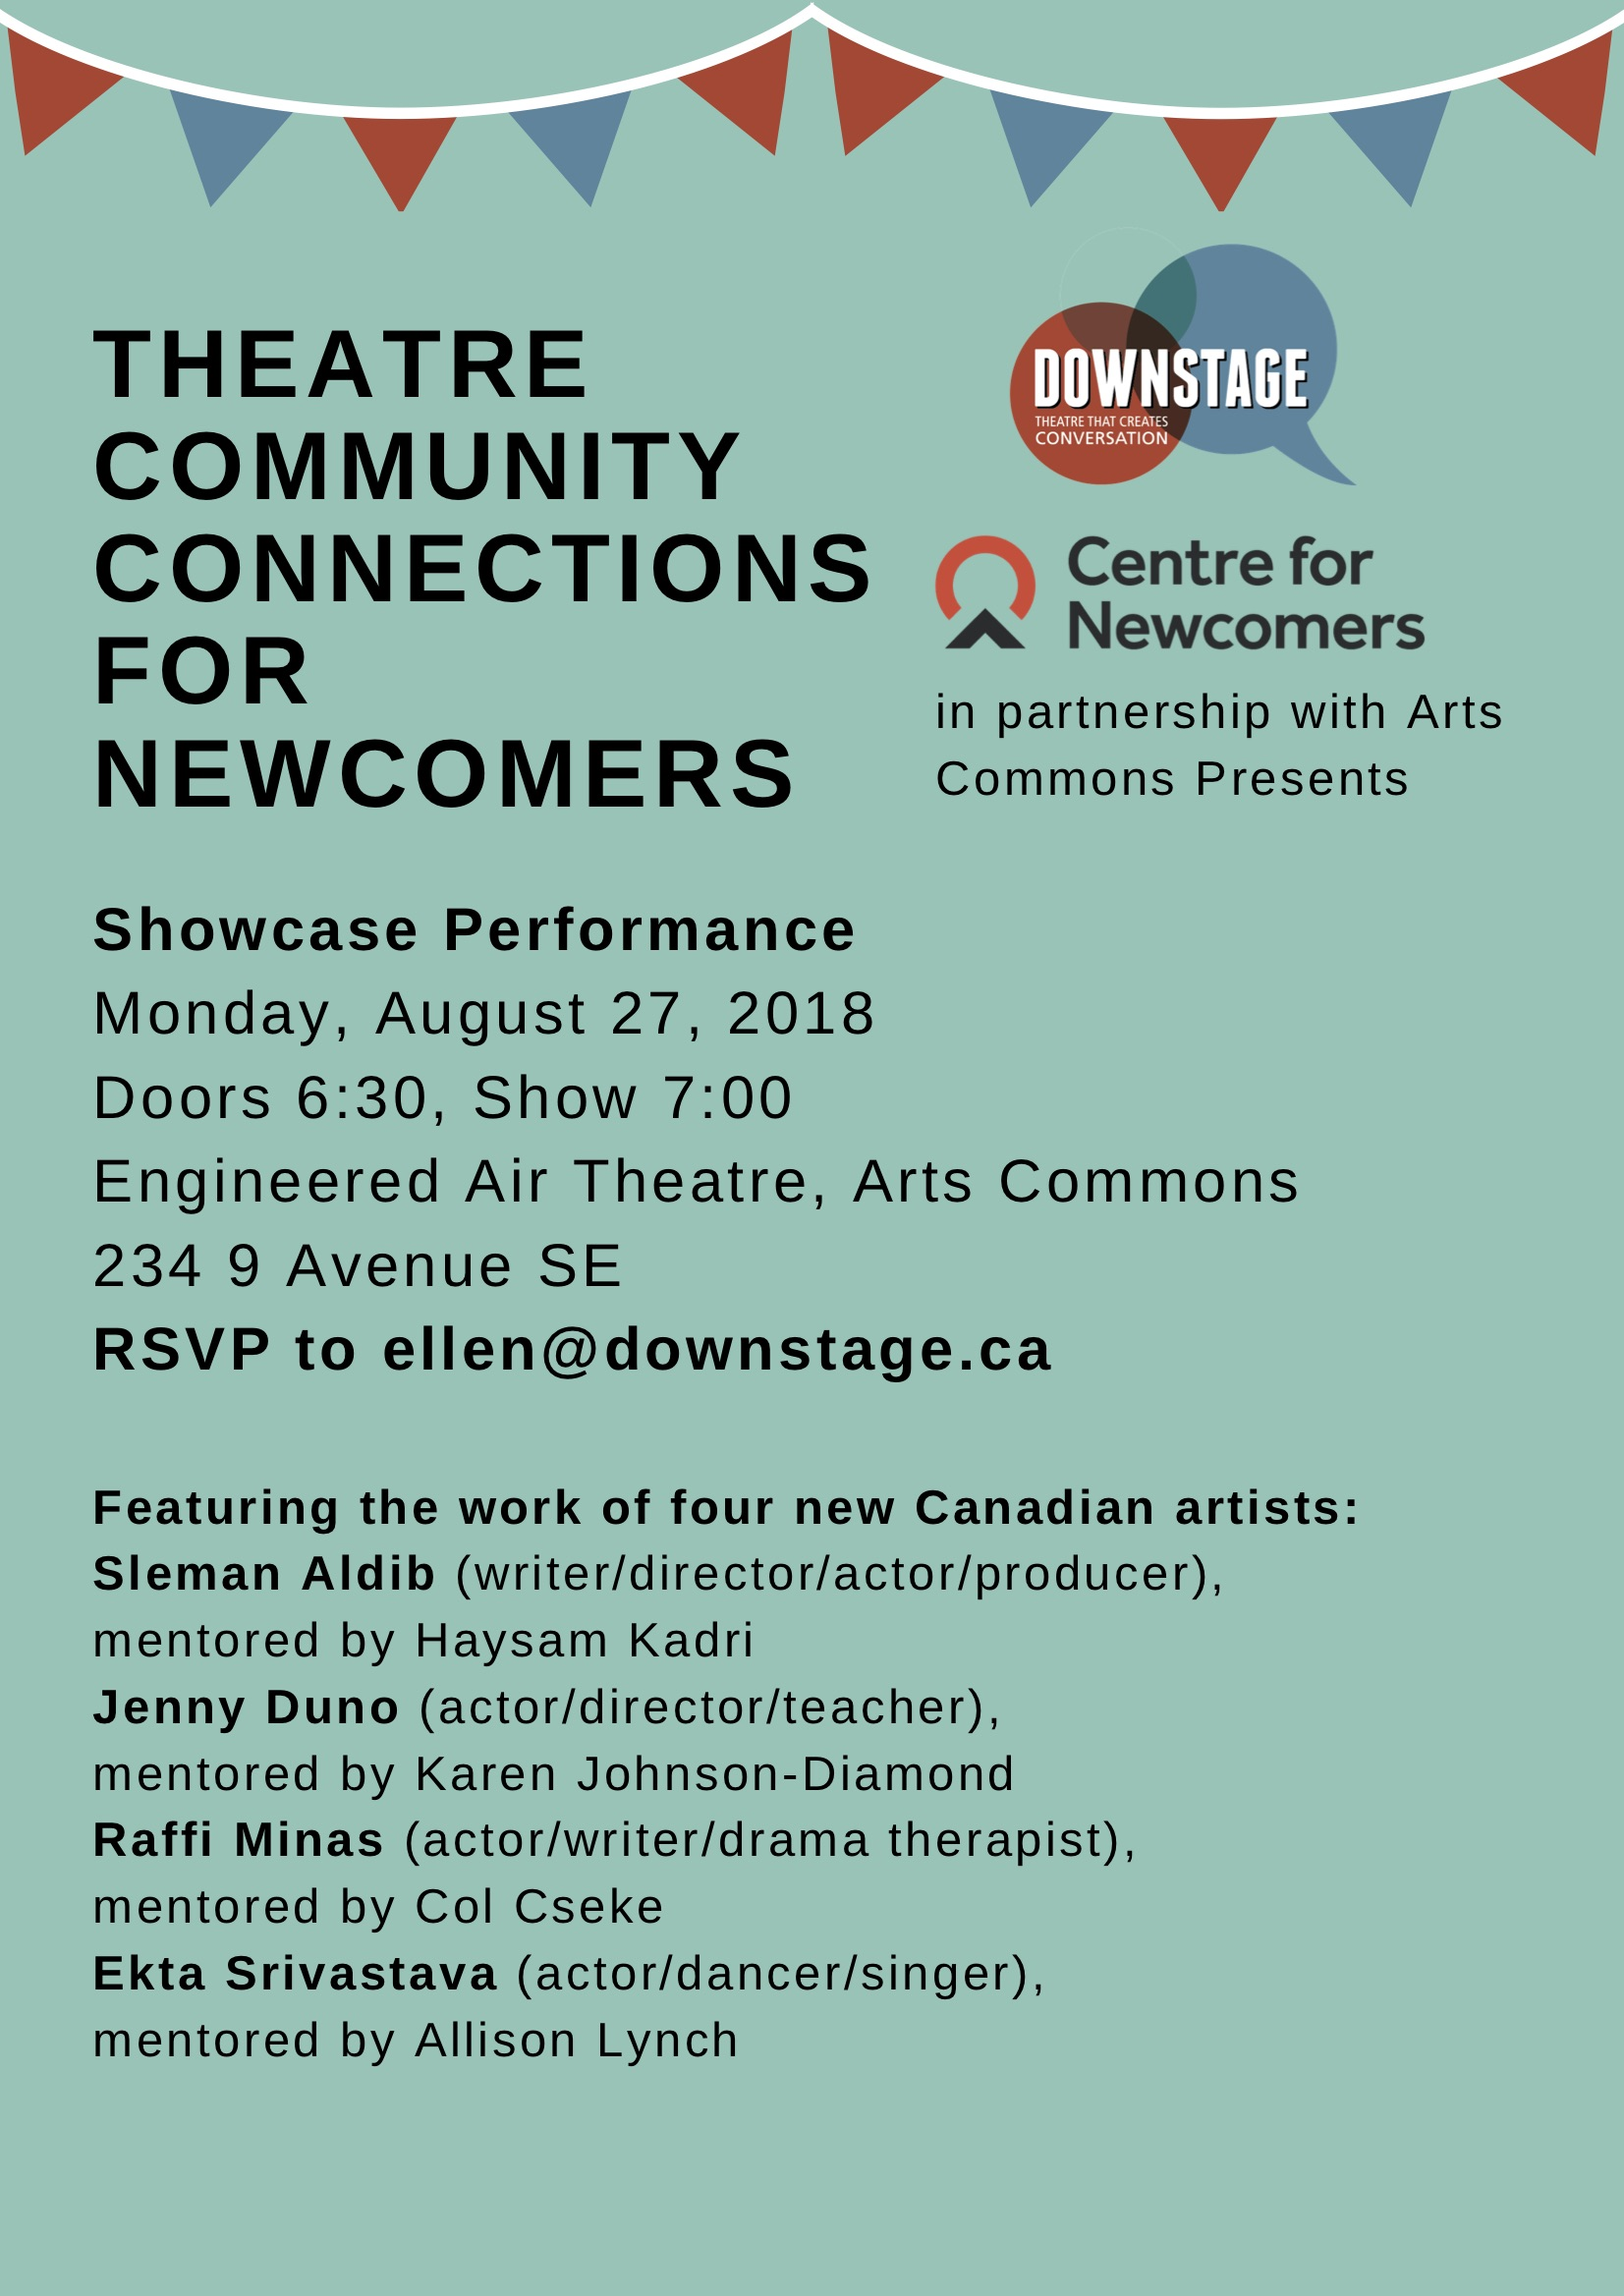 Theatre Community Connections Showcase Invite.jpg